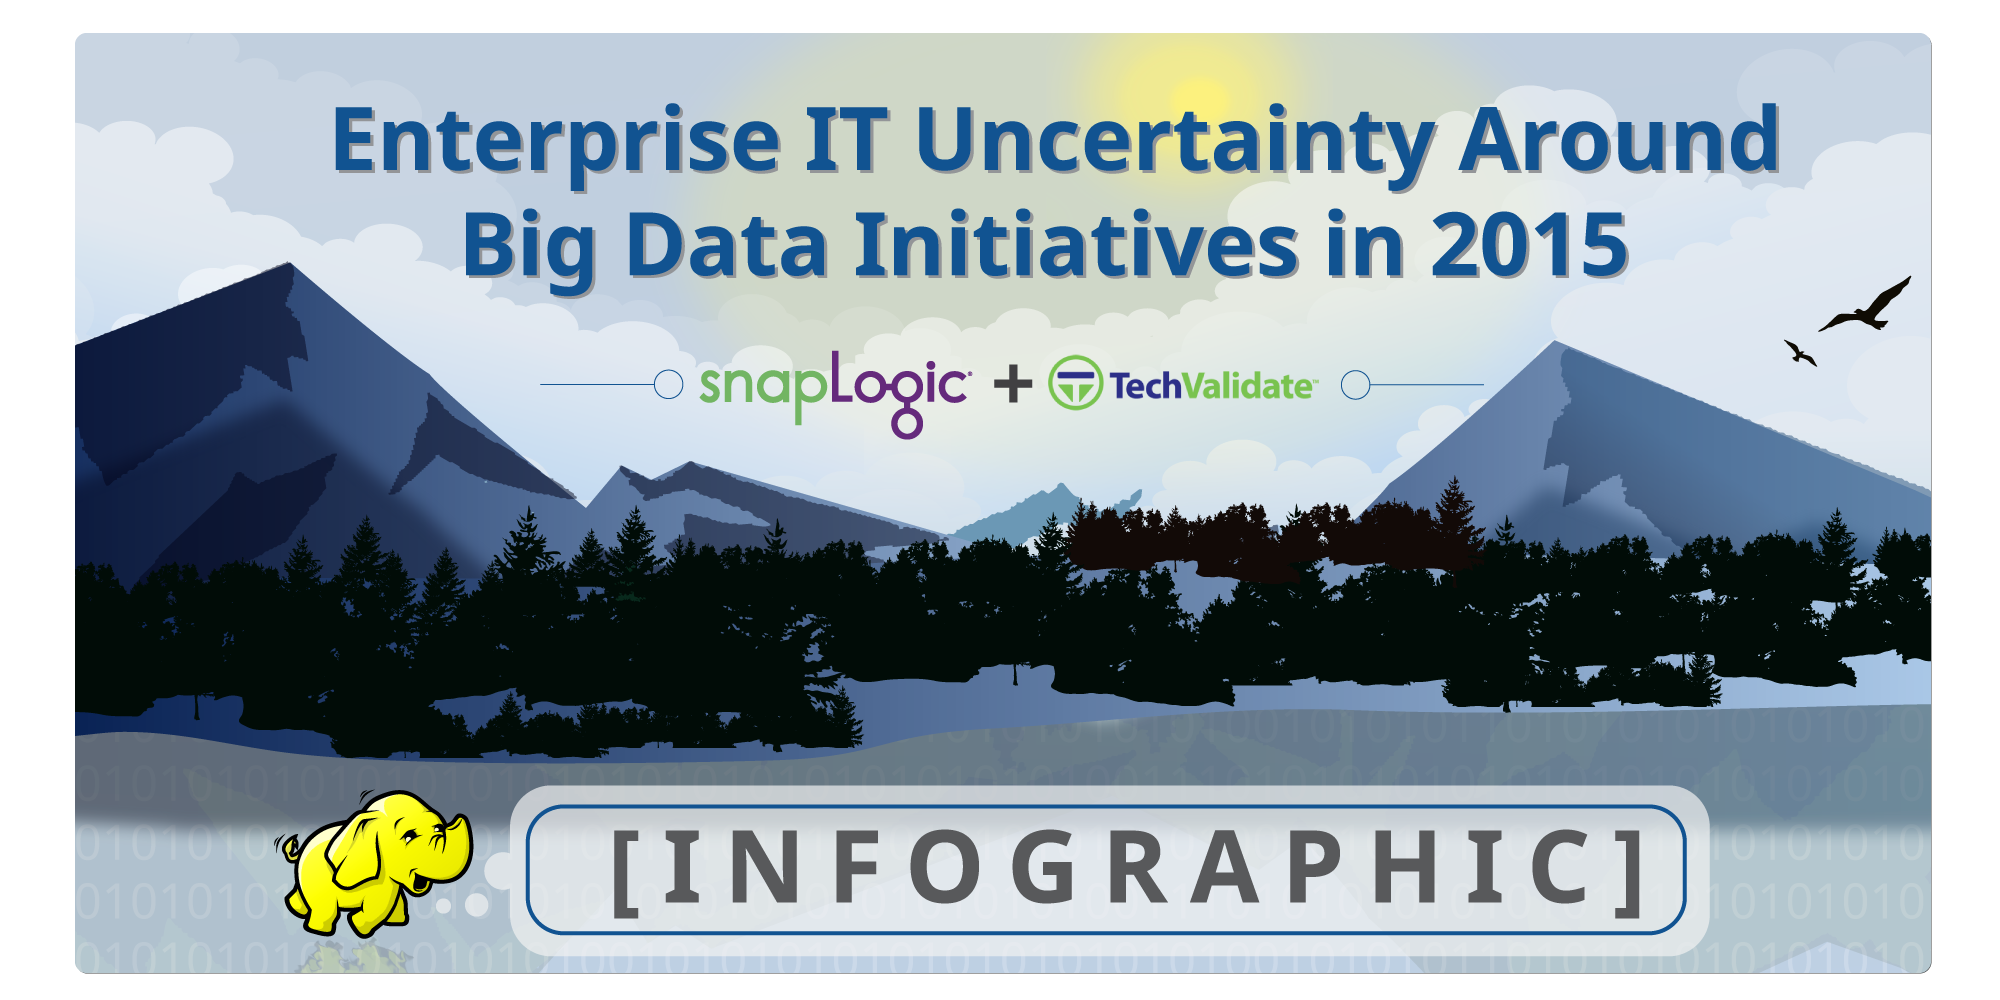 Enterprise IT Uncertainty Around Big Data Initiatives